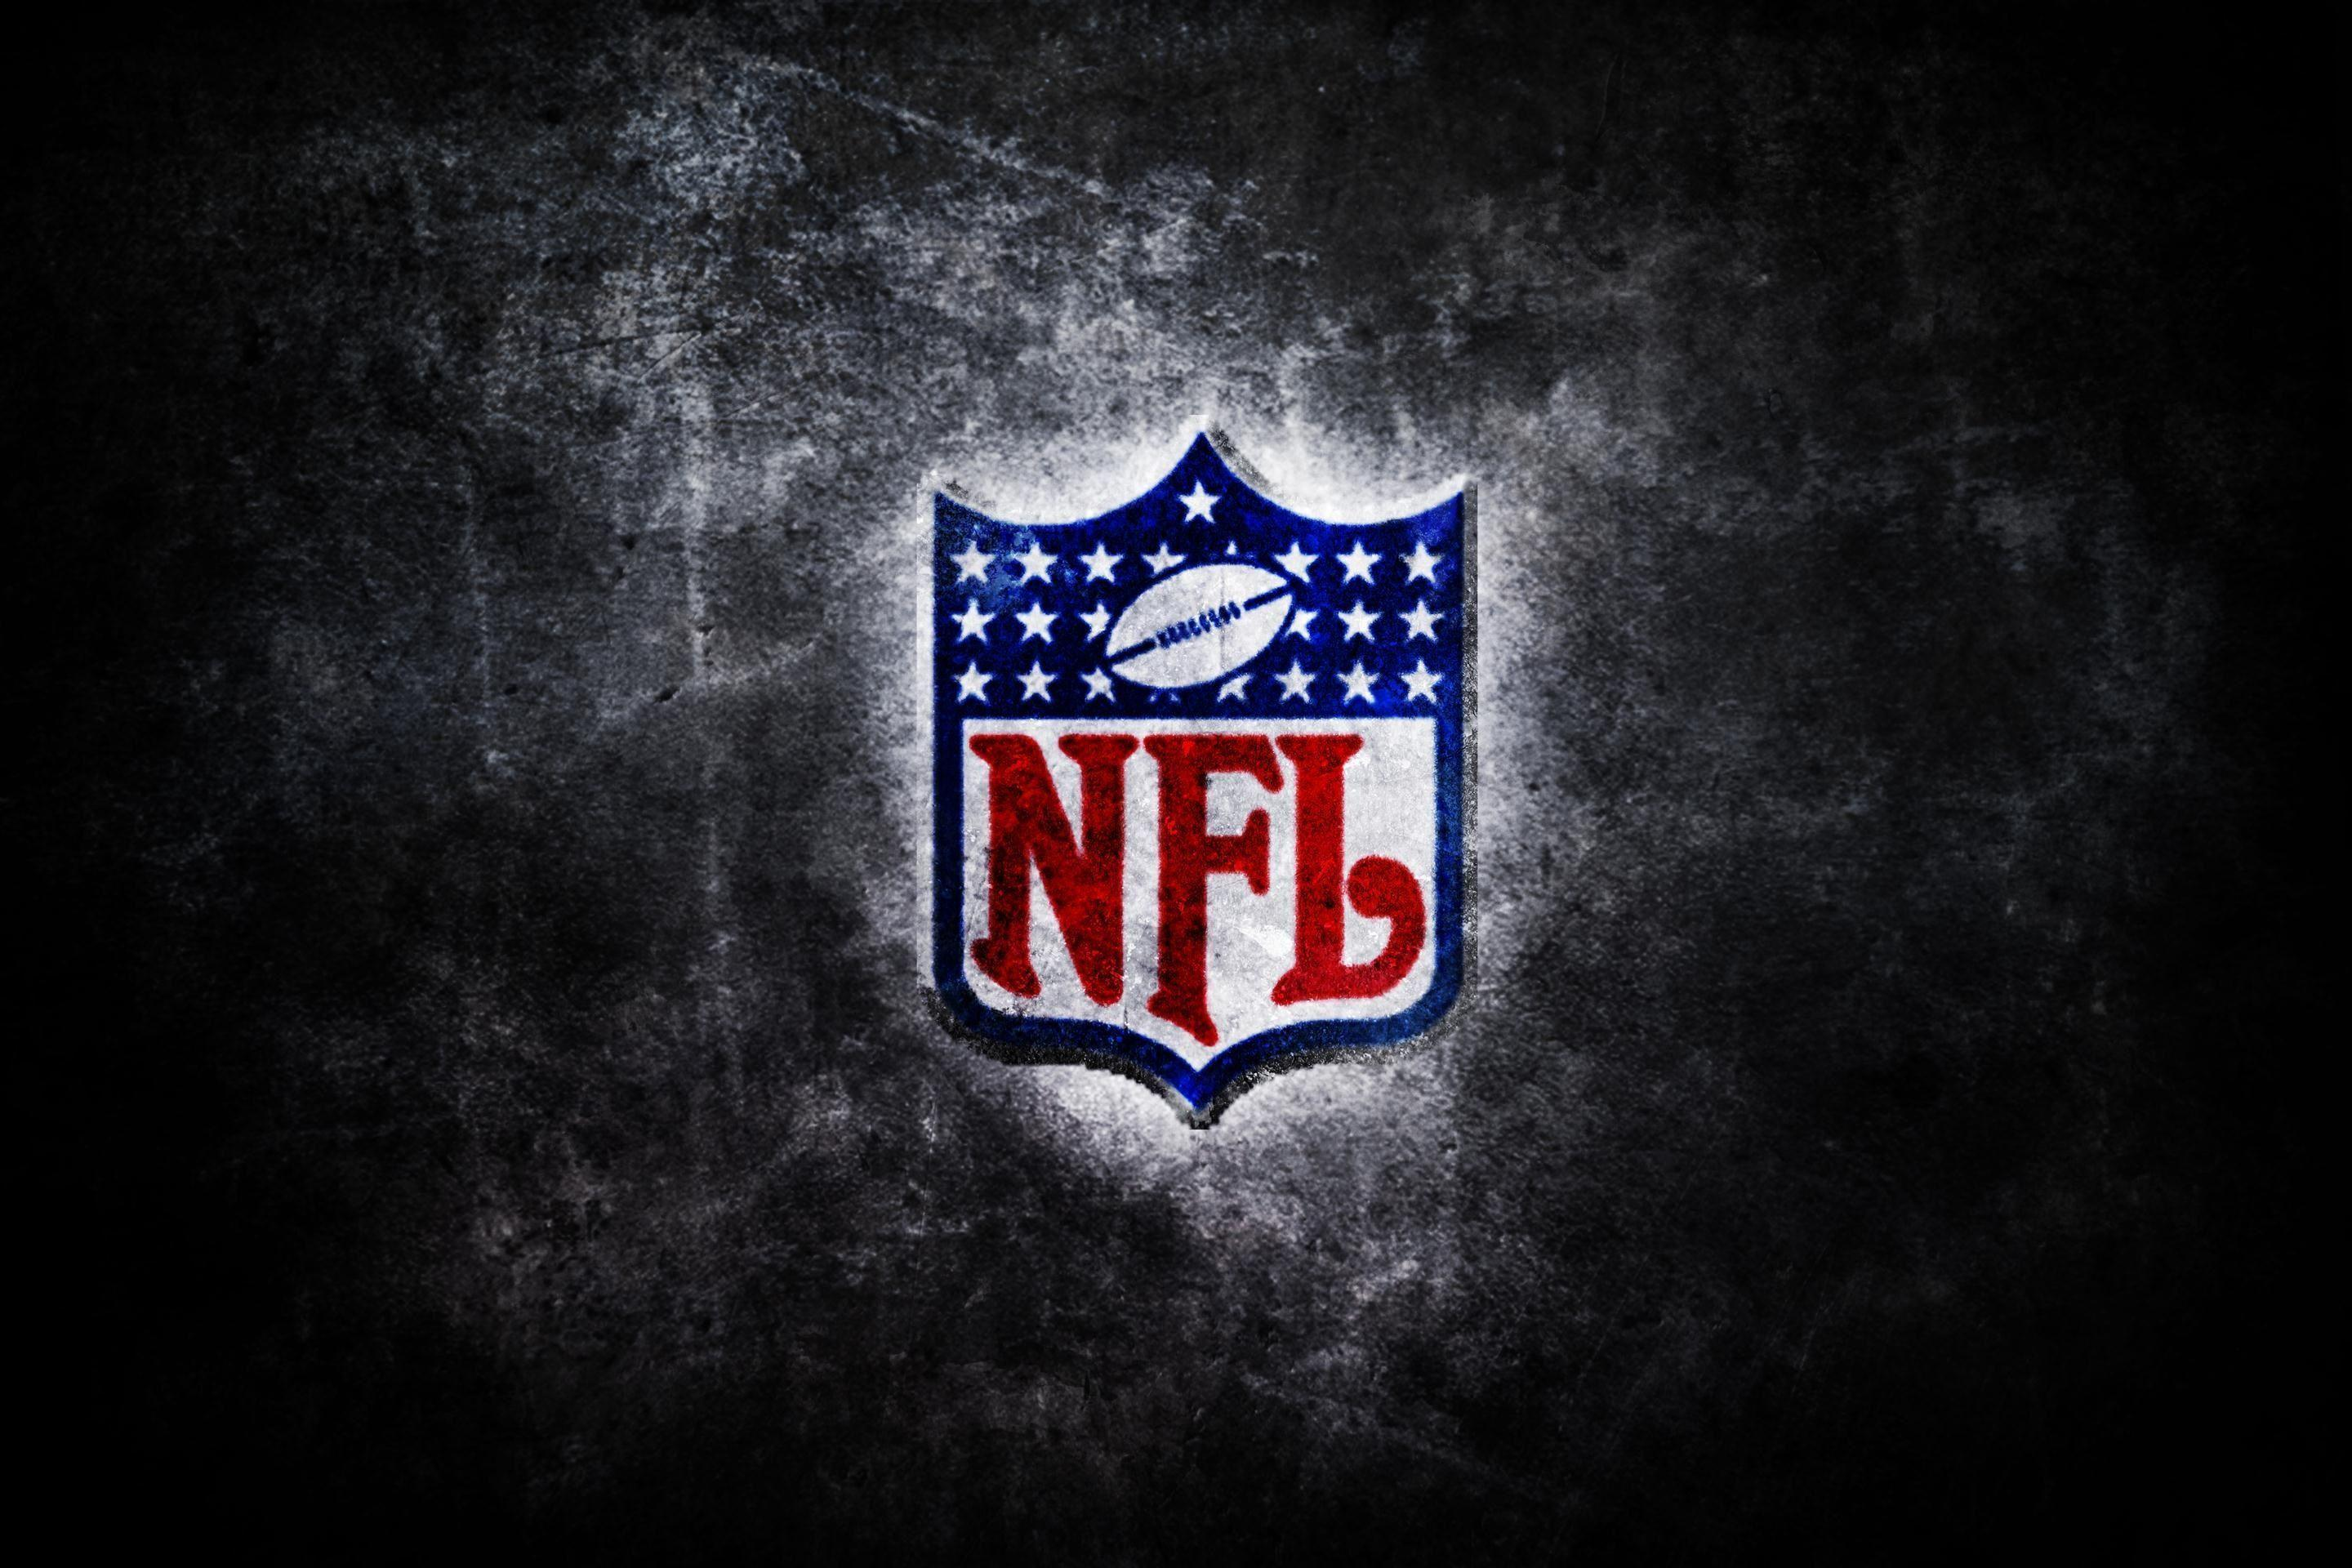 Nfl Wallpapers Top Free Nfl Backgrounds Wallpaperaccess